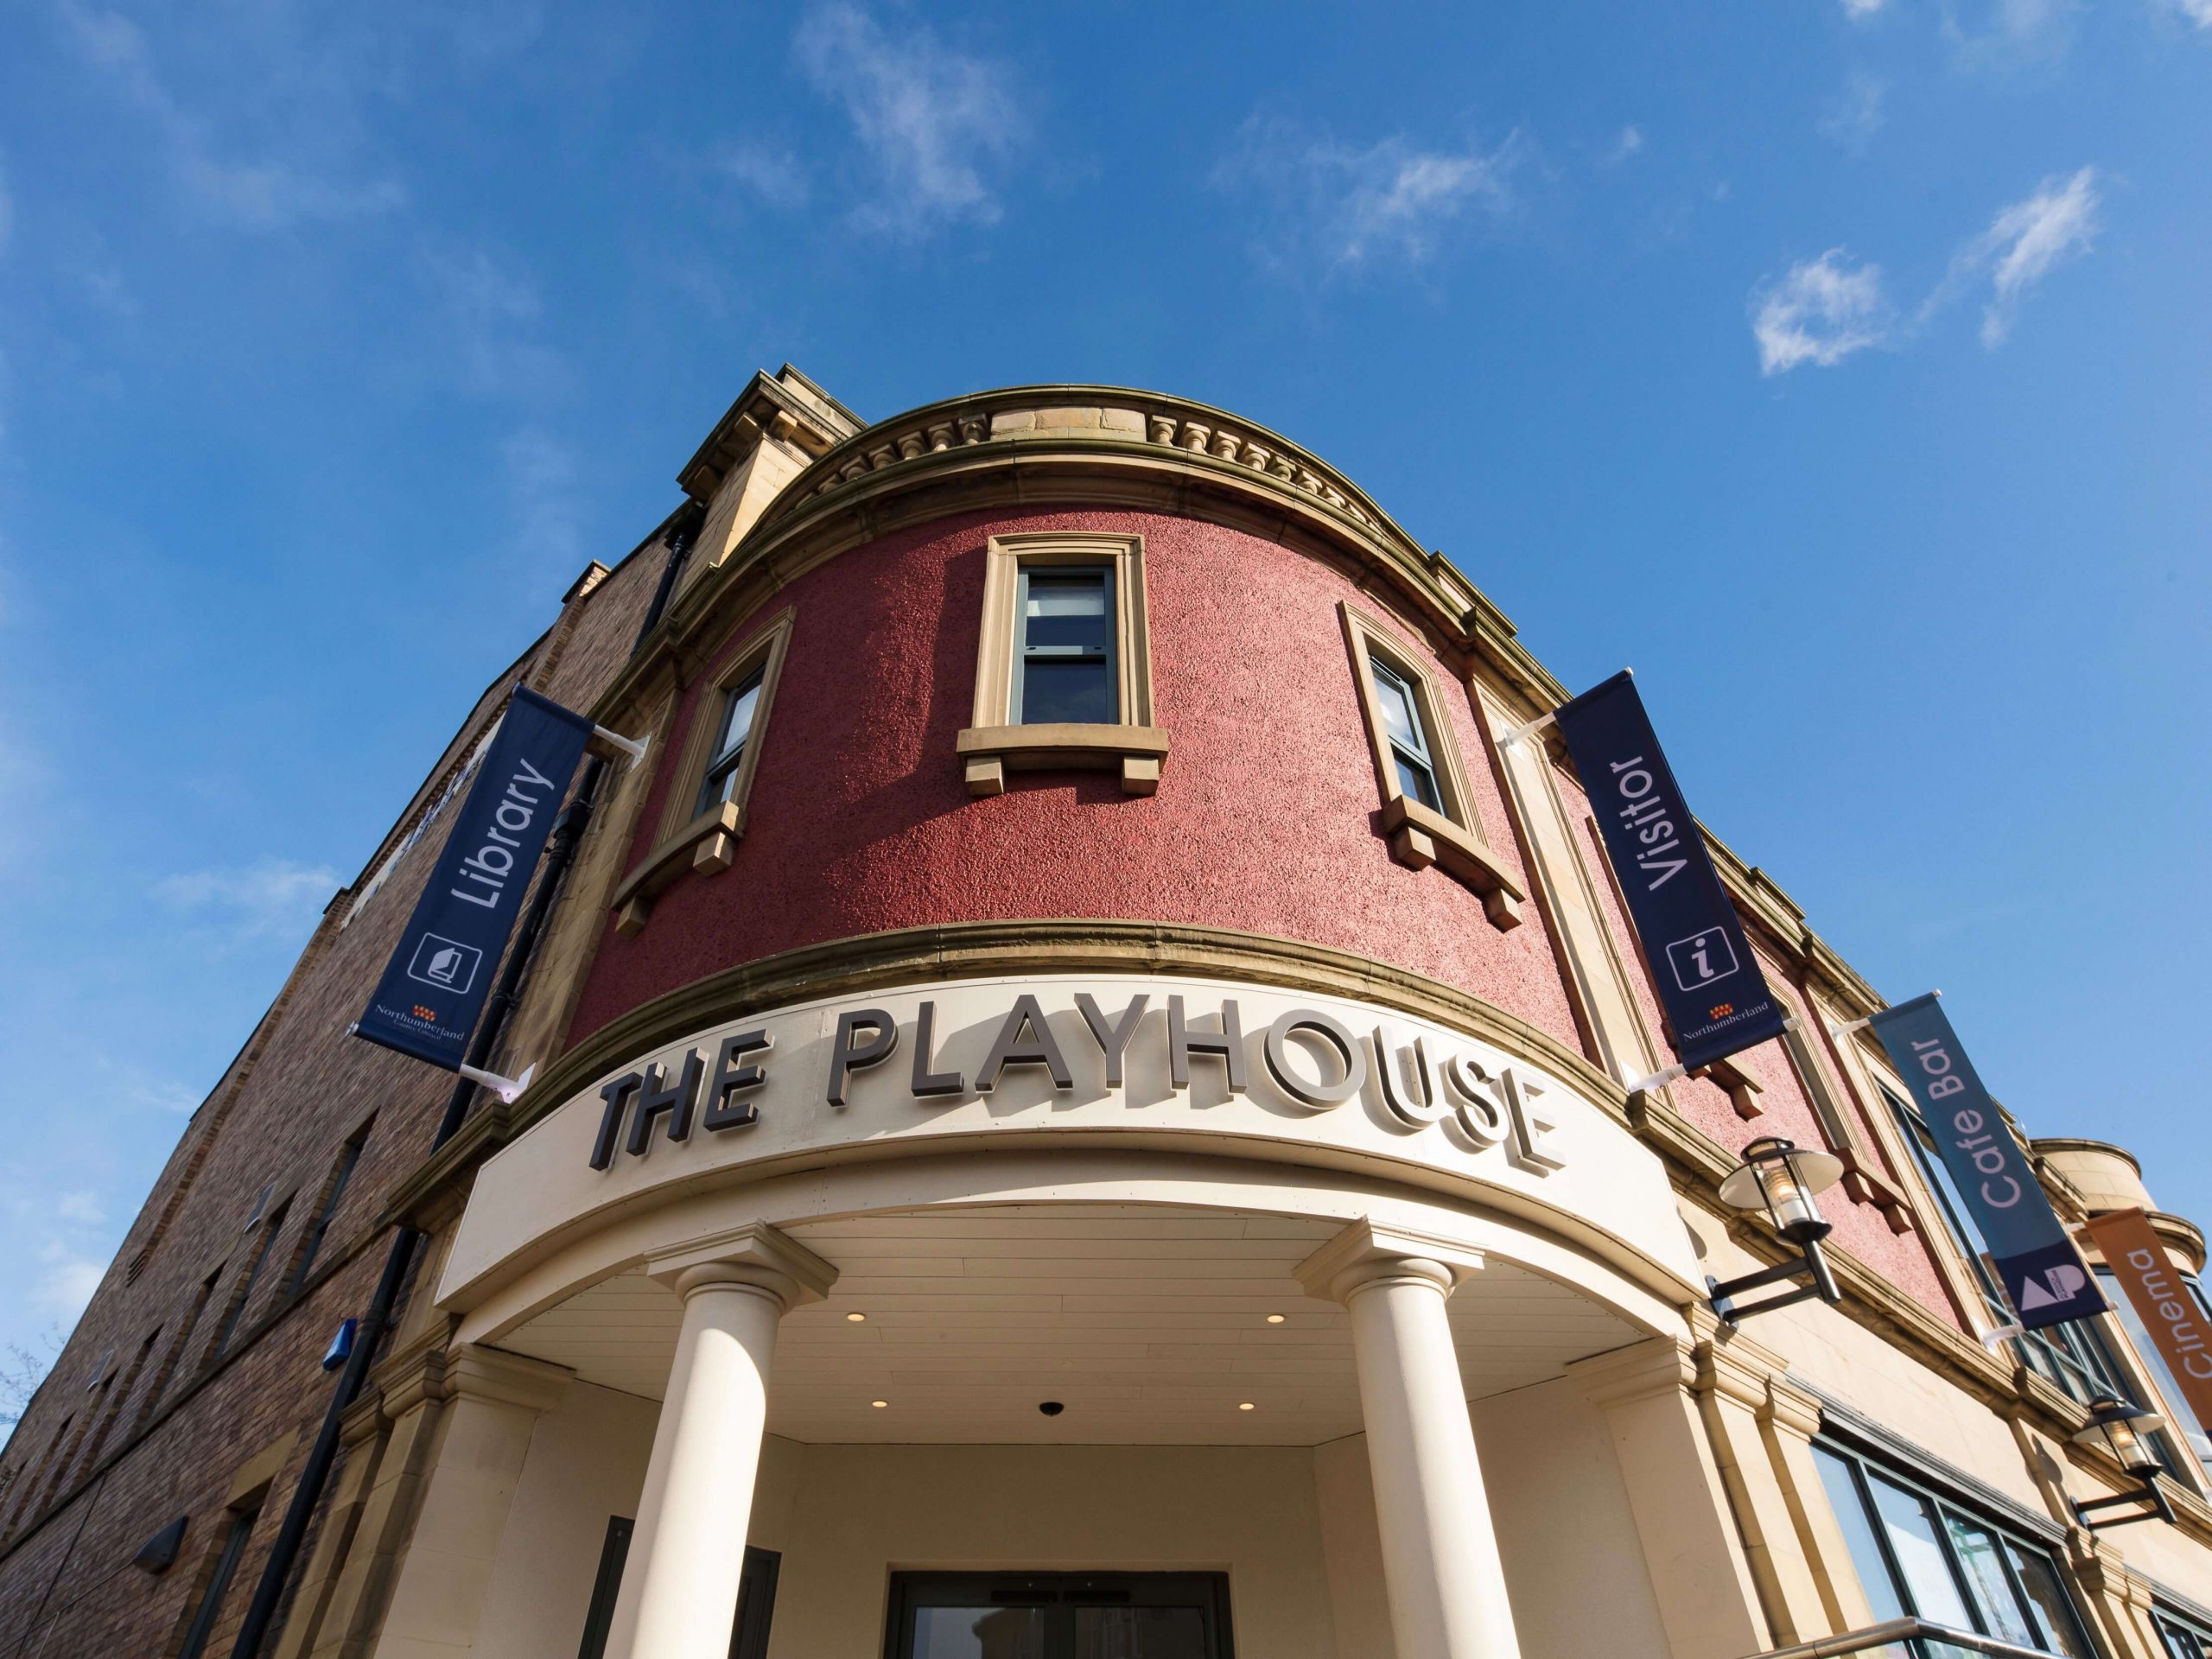 New exterior signage for Alnwick Playhouse